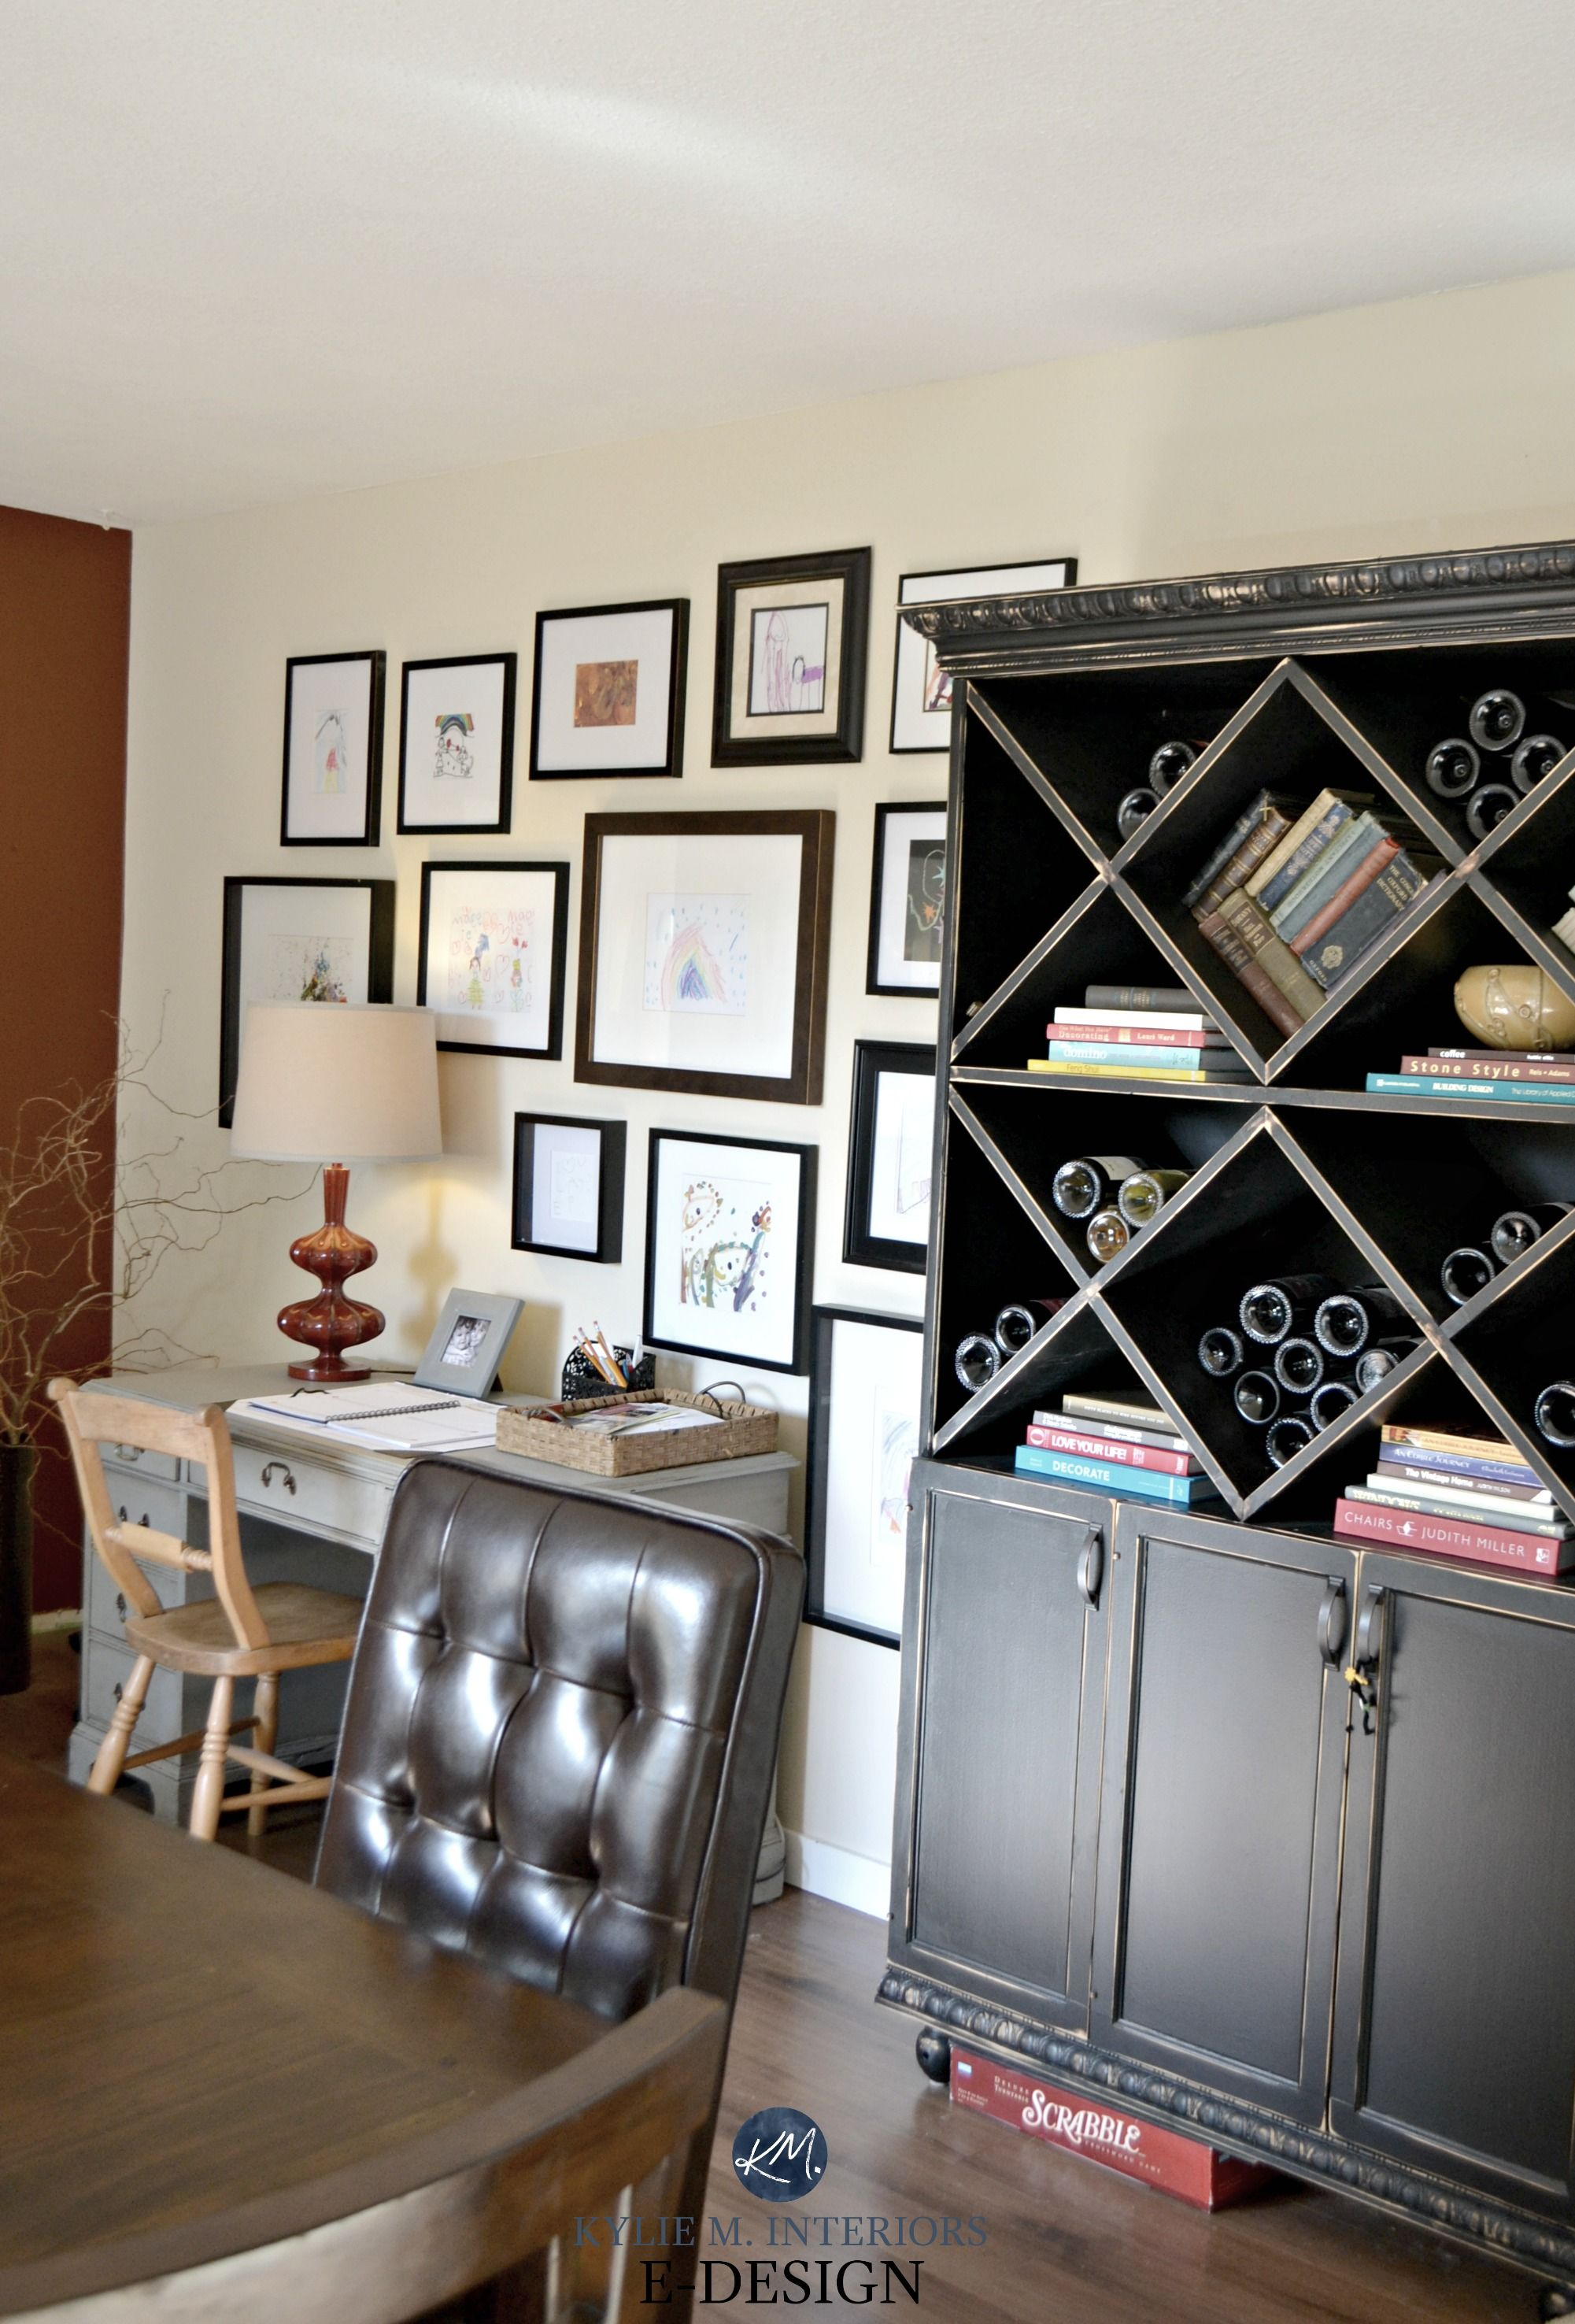 The Right Height To Hang Artwork And Mirrors Tips And Ideas In 2020 Paint Colors For Living Room Paint Colors Benjamin Moore Interior